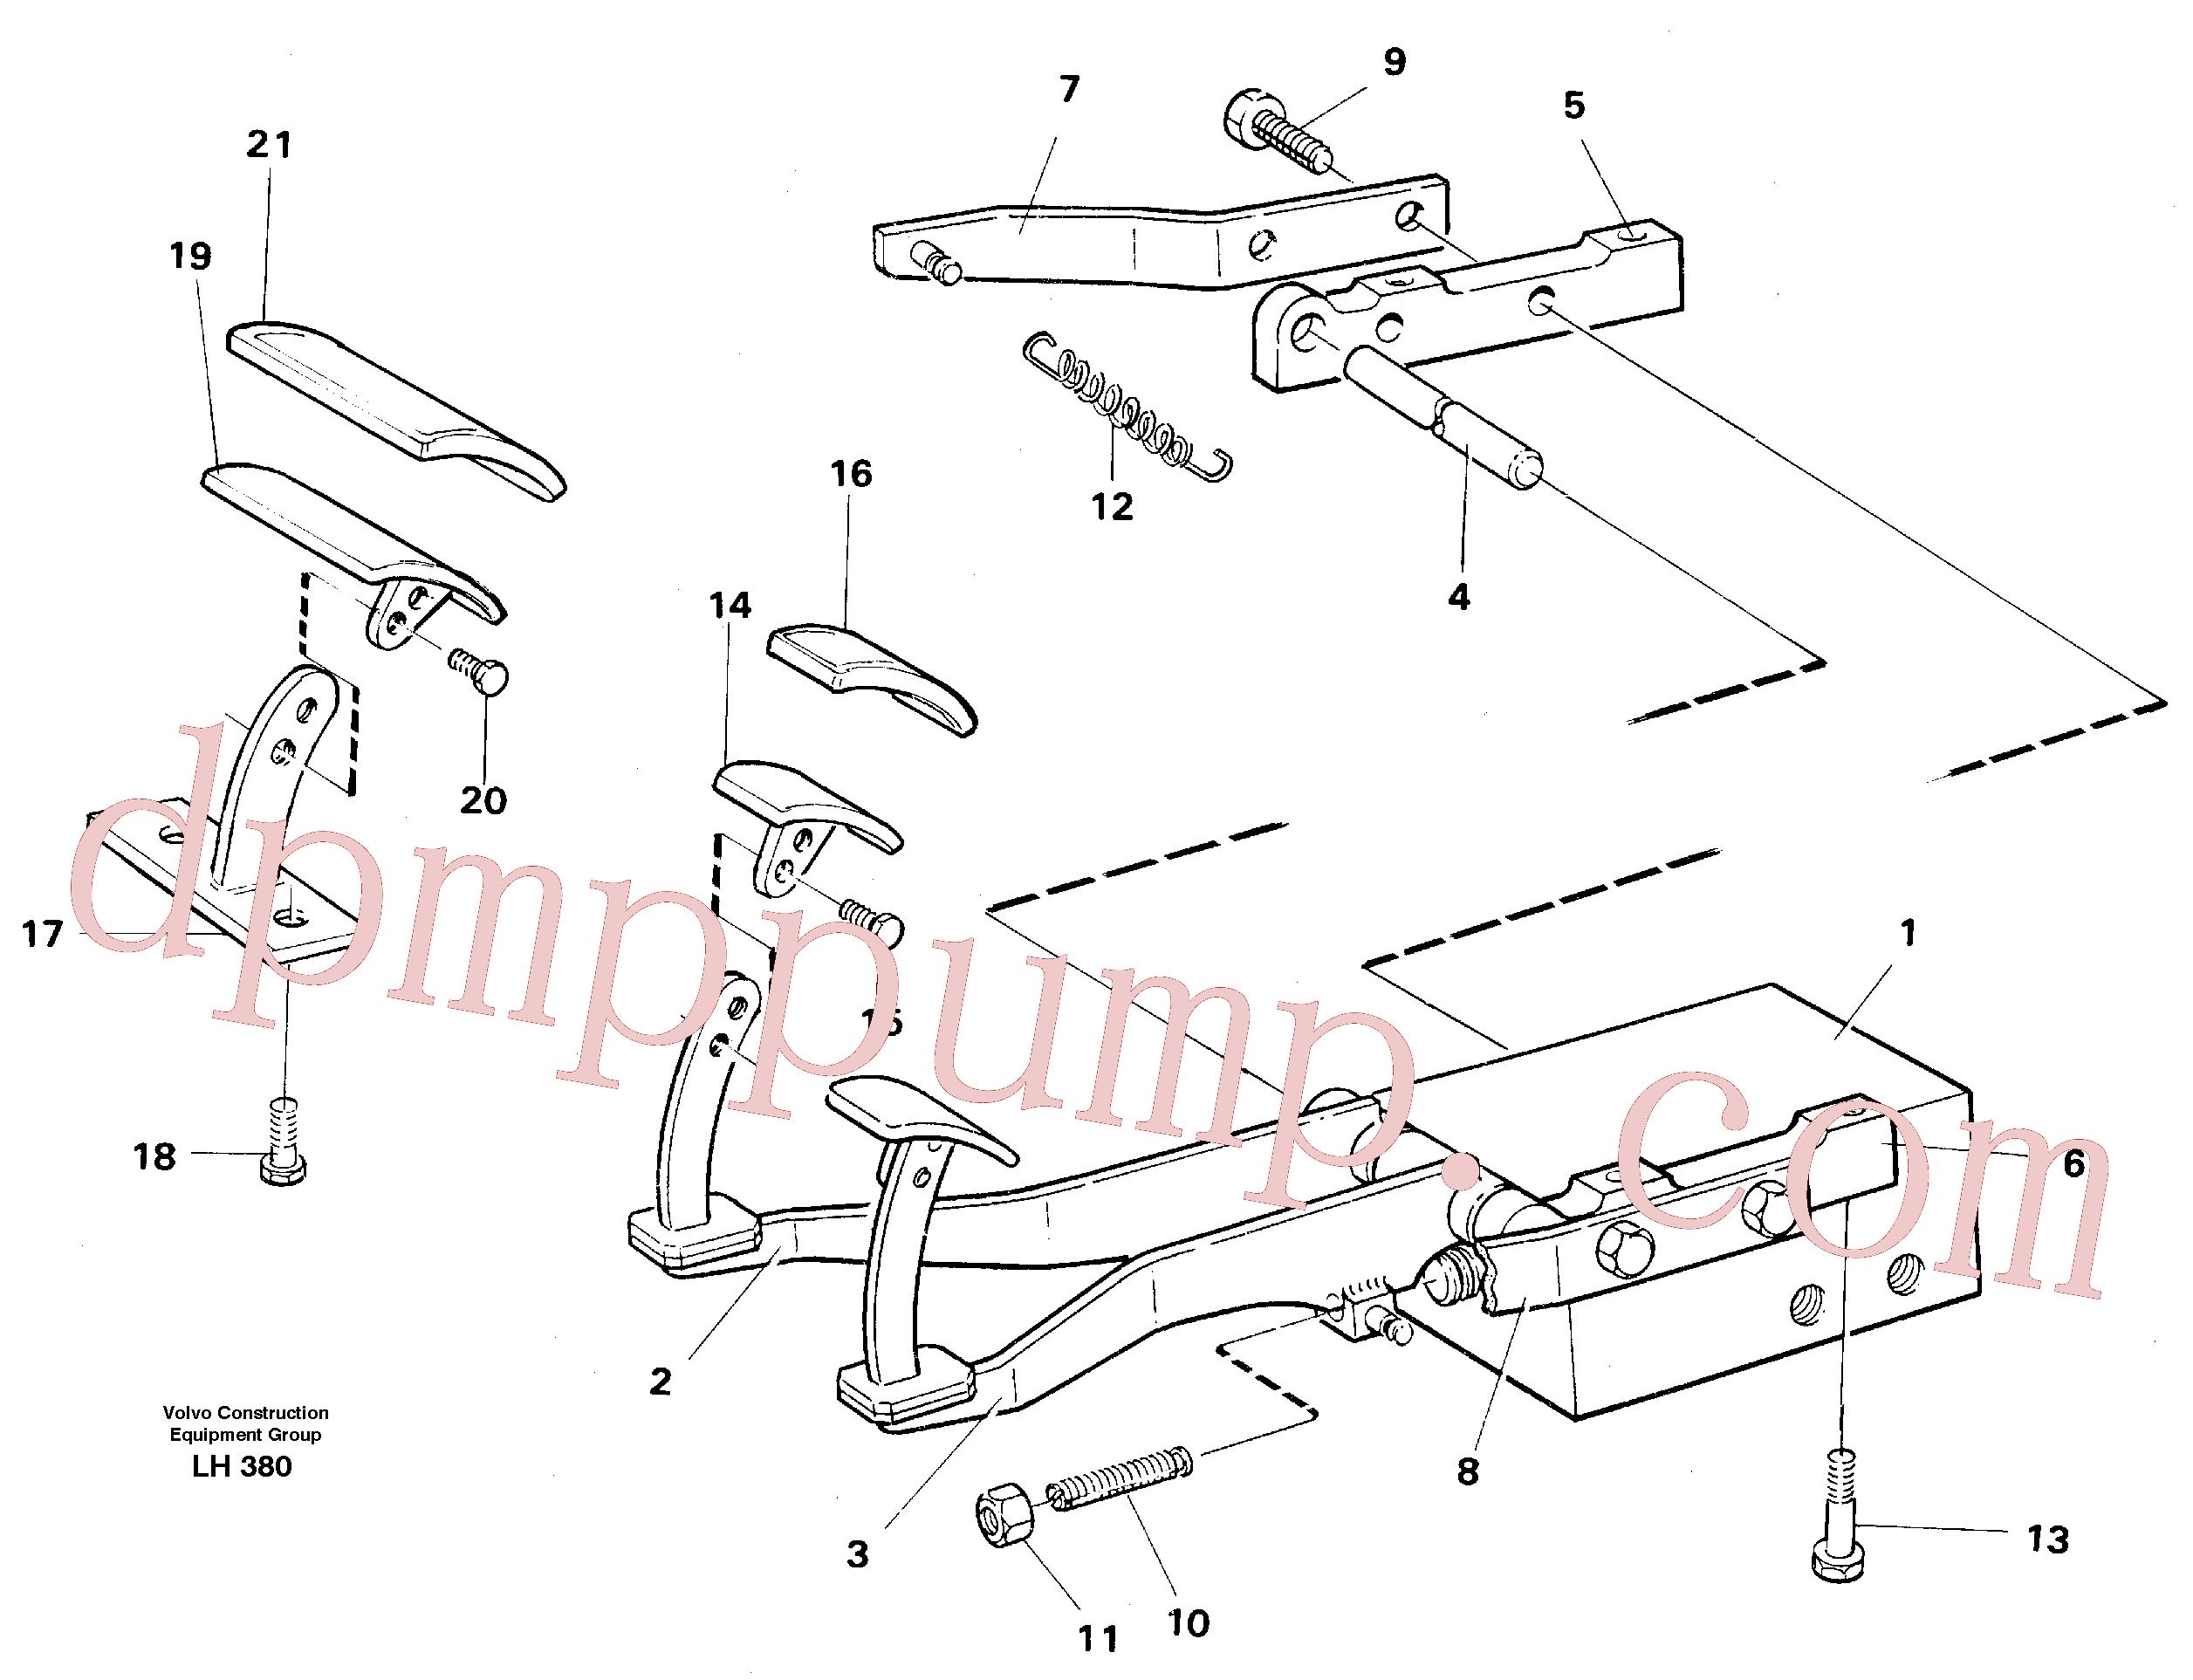 VOE14243546 for Volvo Pedal valve with foot rest(LH380 assembly)